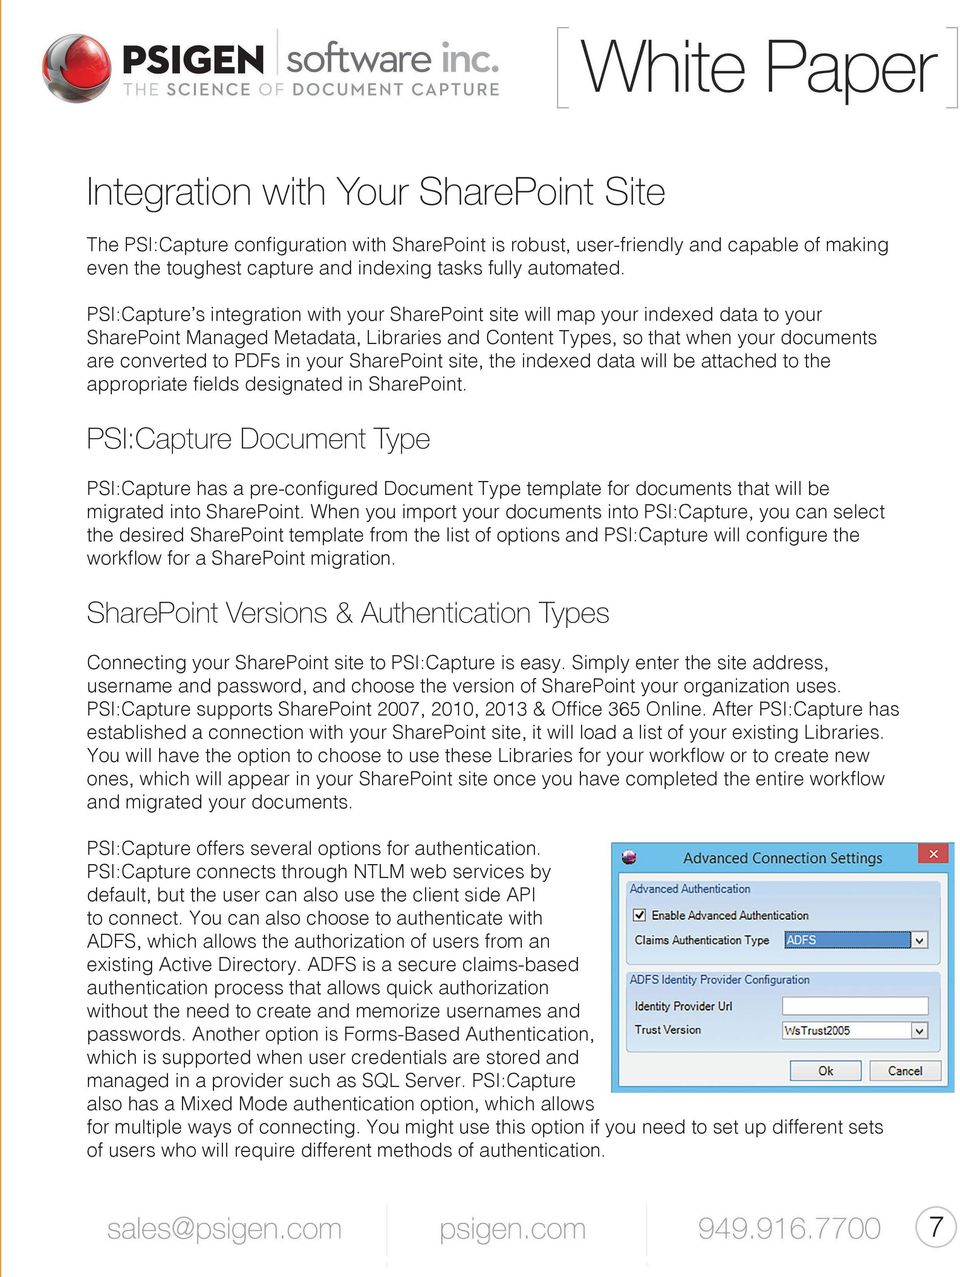 your SharePoint site, the indexed data will be attached to the appropriate fields designated in SharePoint.